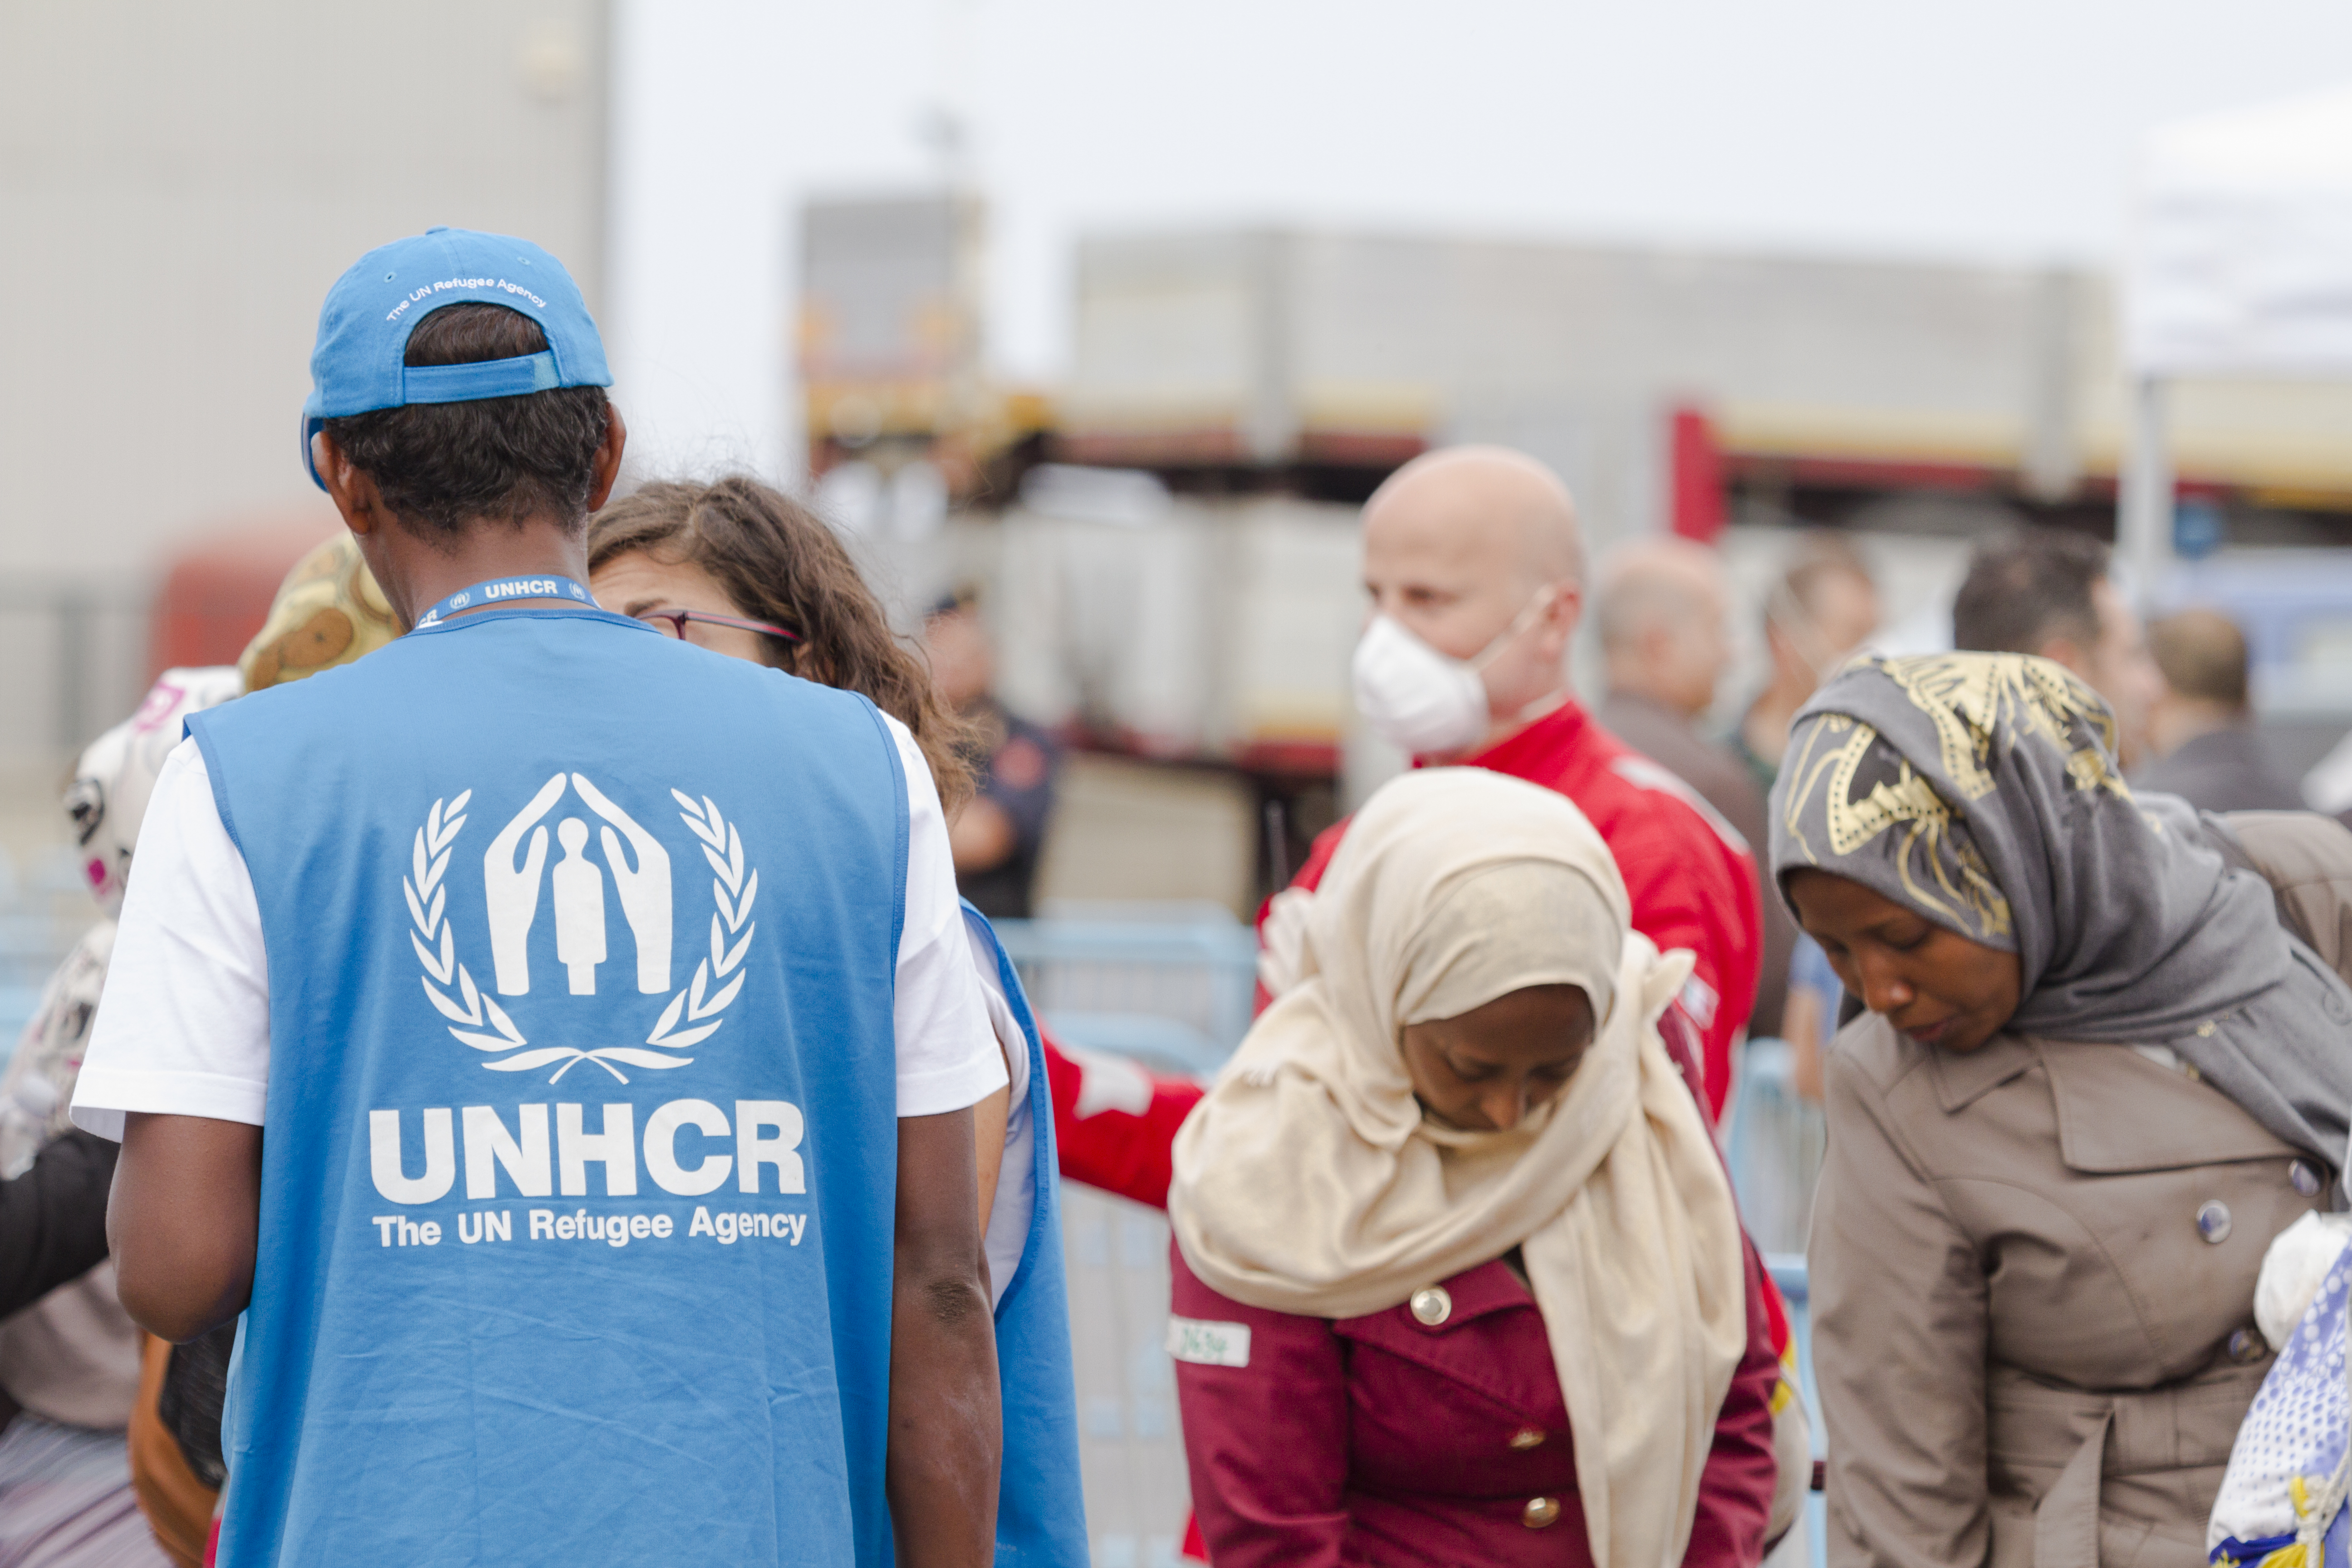 Members of the UNHCR attend to migrants rescued at sea by the Royal Navy warship HMS Bulwark, on June 08, 2015 in Catania, Italy.